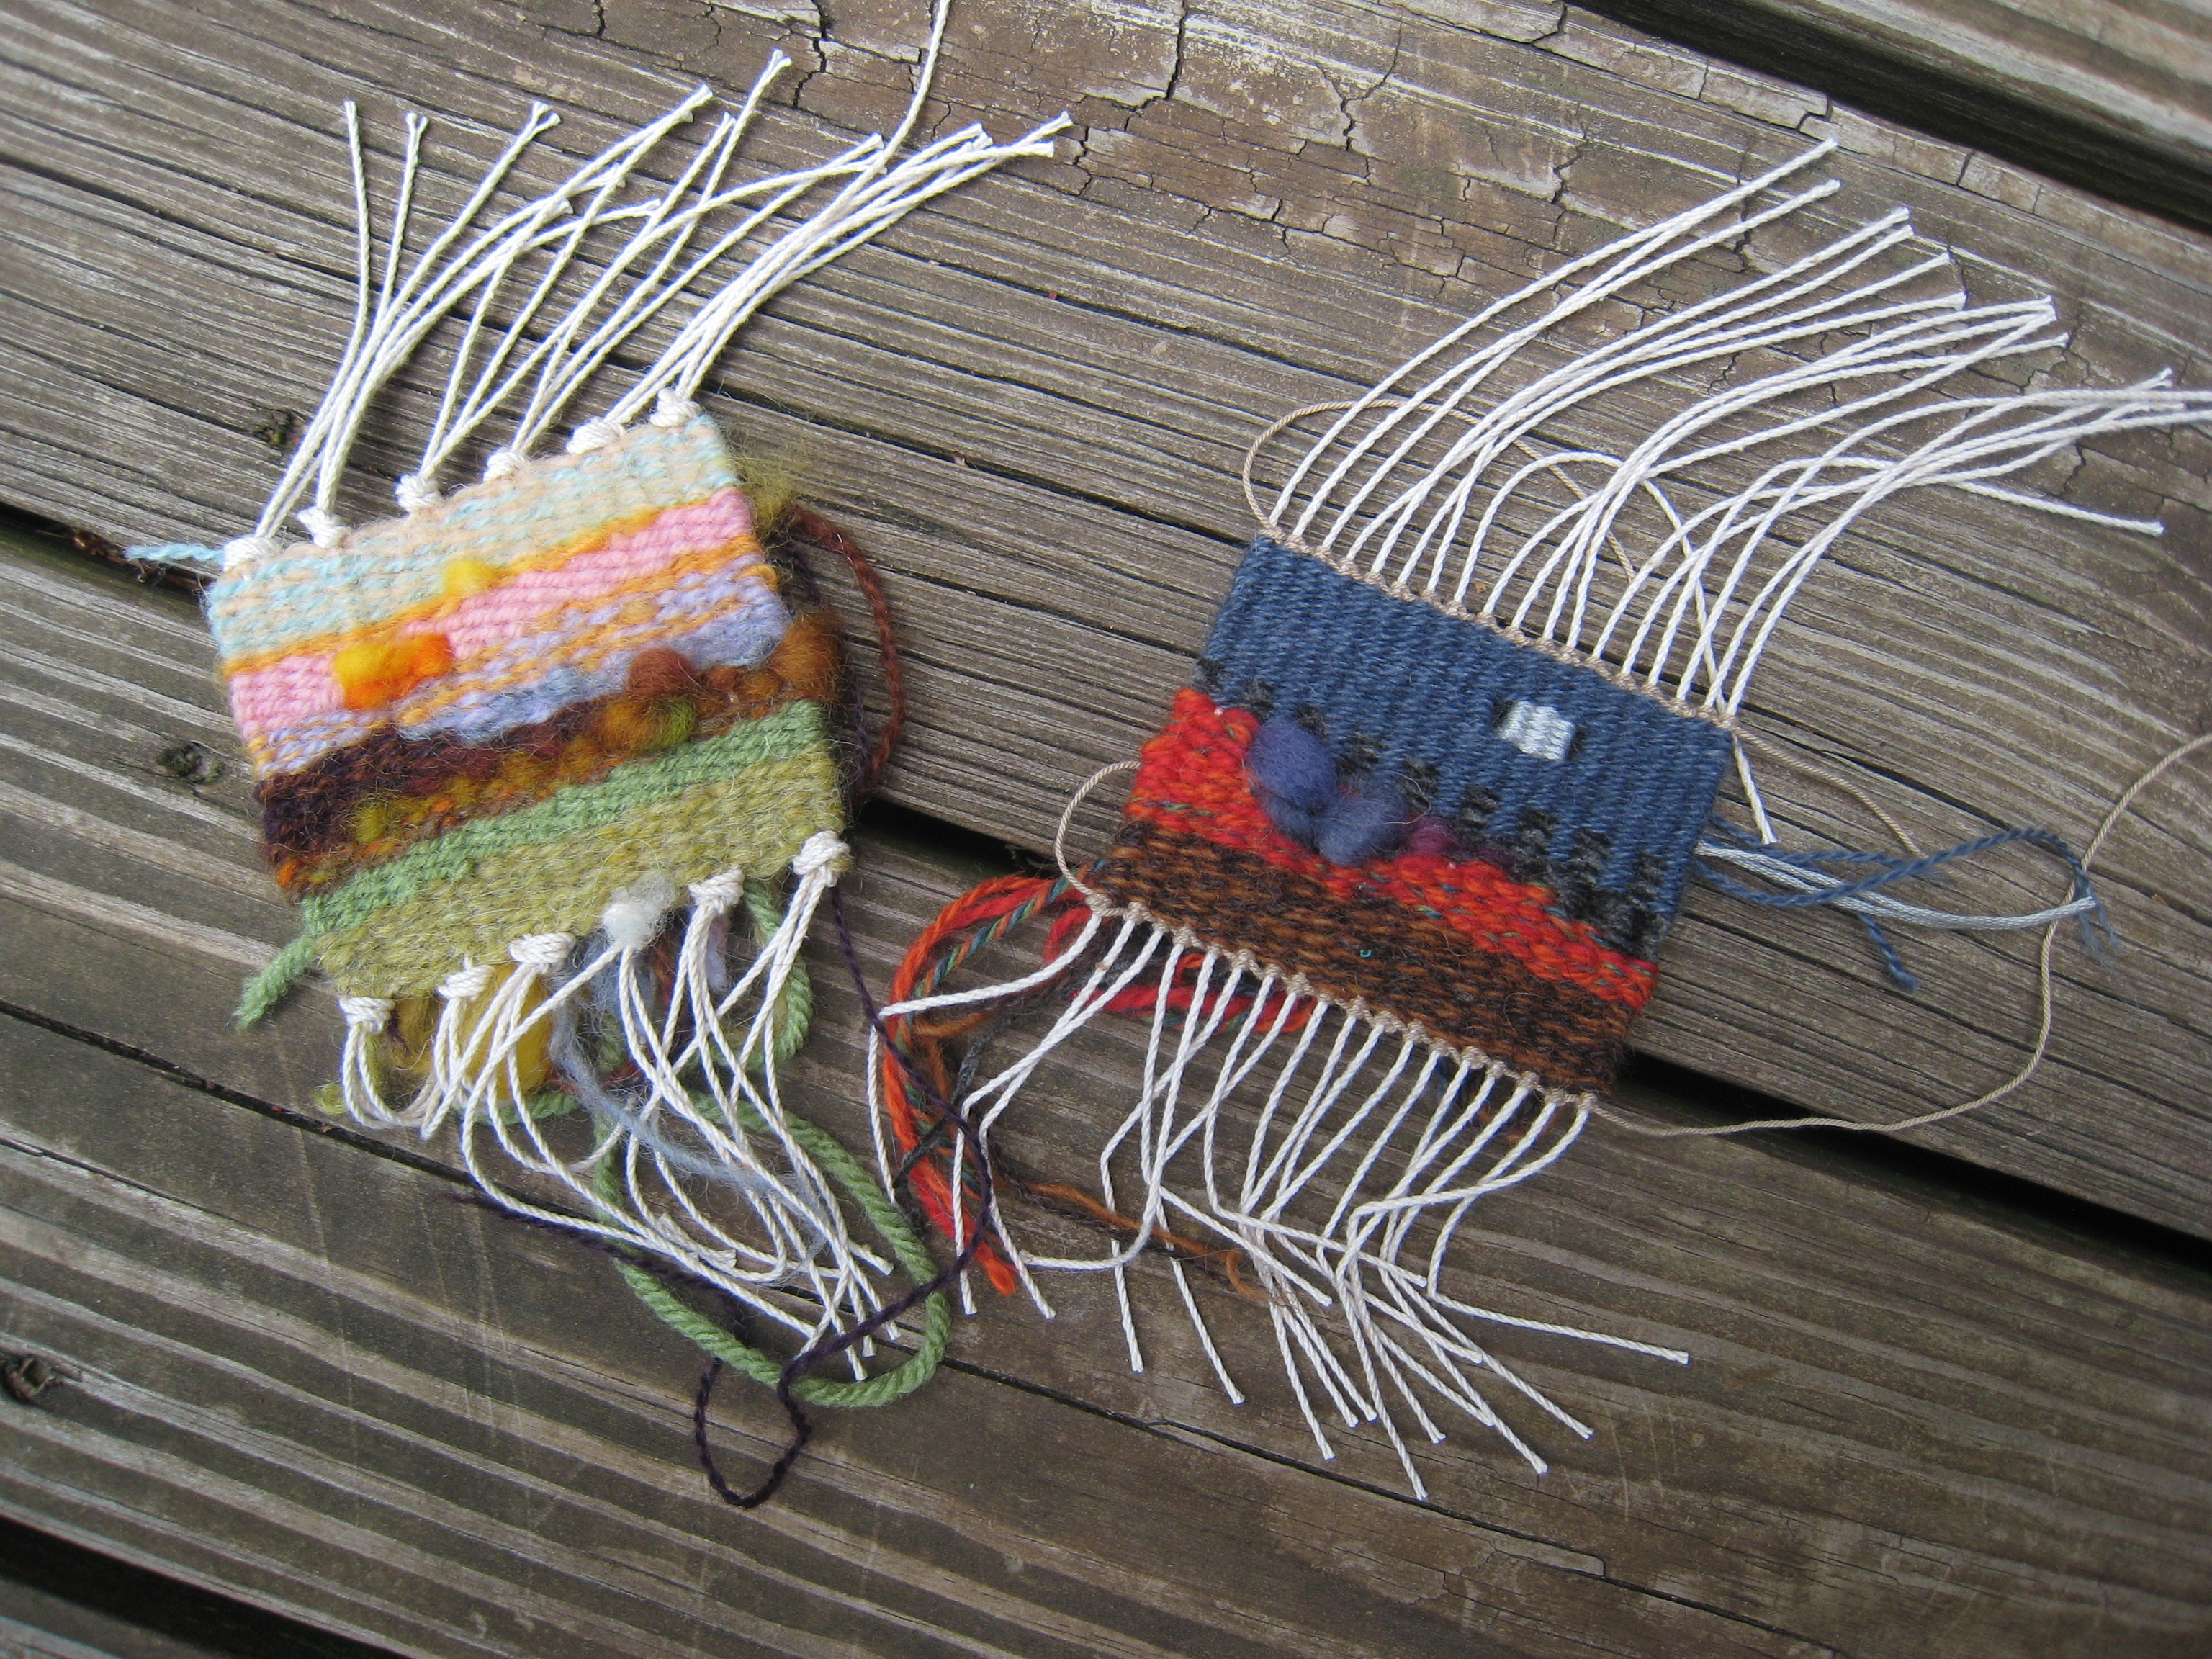 Knitting Events 2018 : Madison knitters guild try tapestry ruth manning